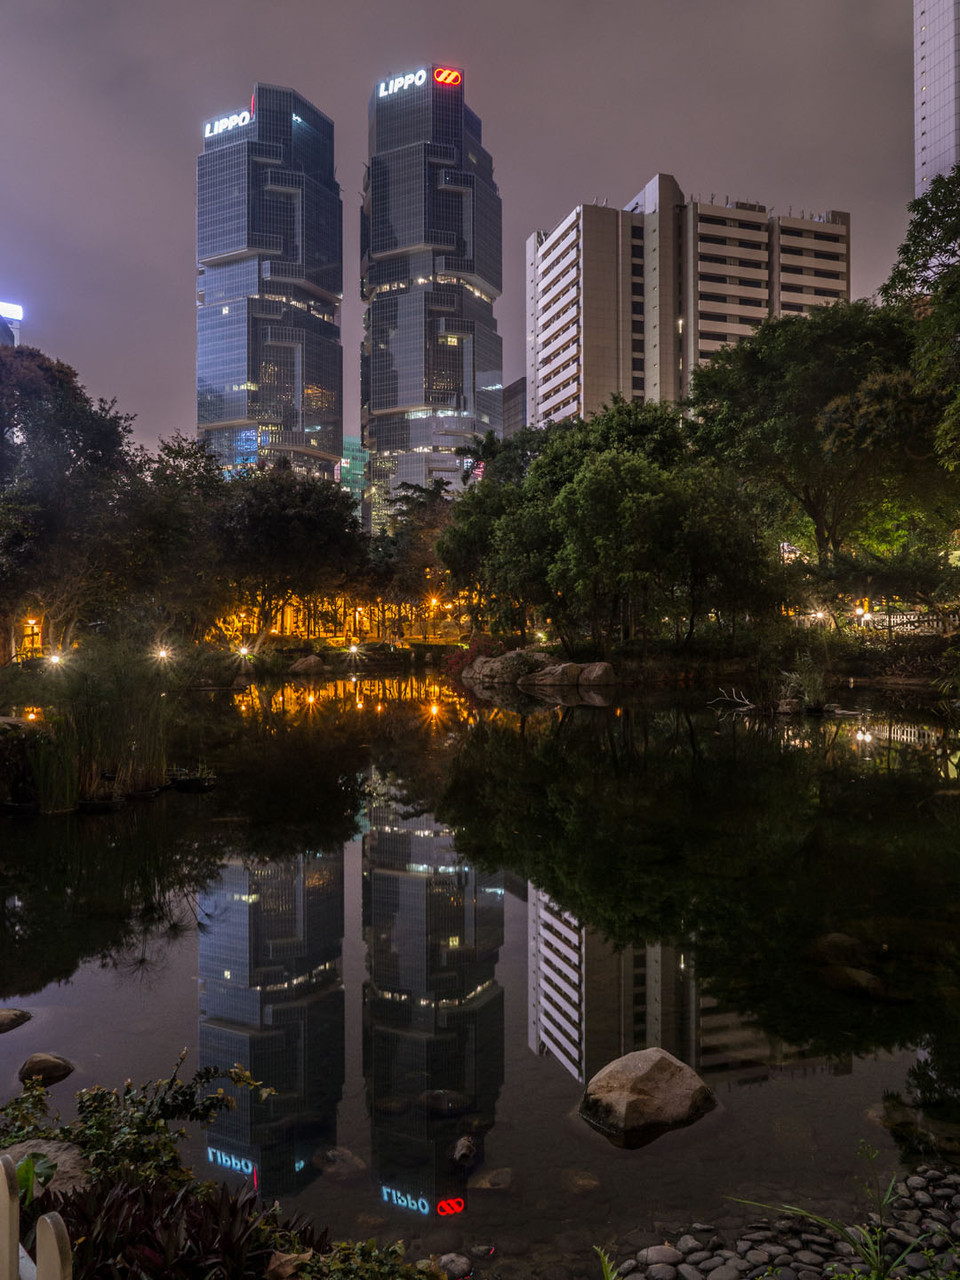 Two Lippo towers, photographed in the Hongkong Park